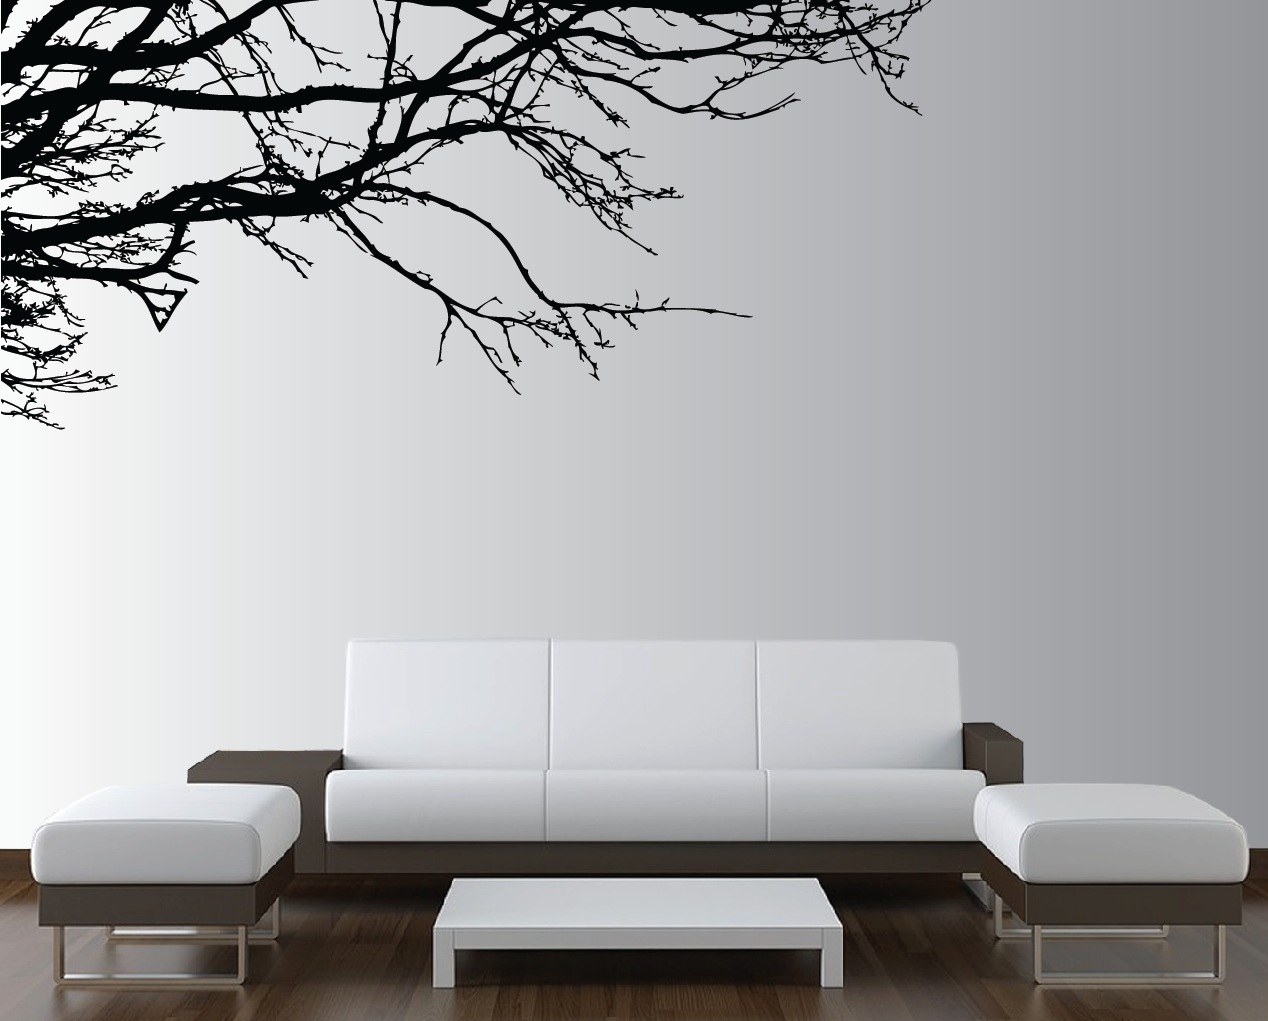 Large wall tree nursery decal oak branches 1130 innovativestencils tree wall decal 1130 living room decorg amipublicfo Choice Image